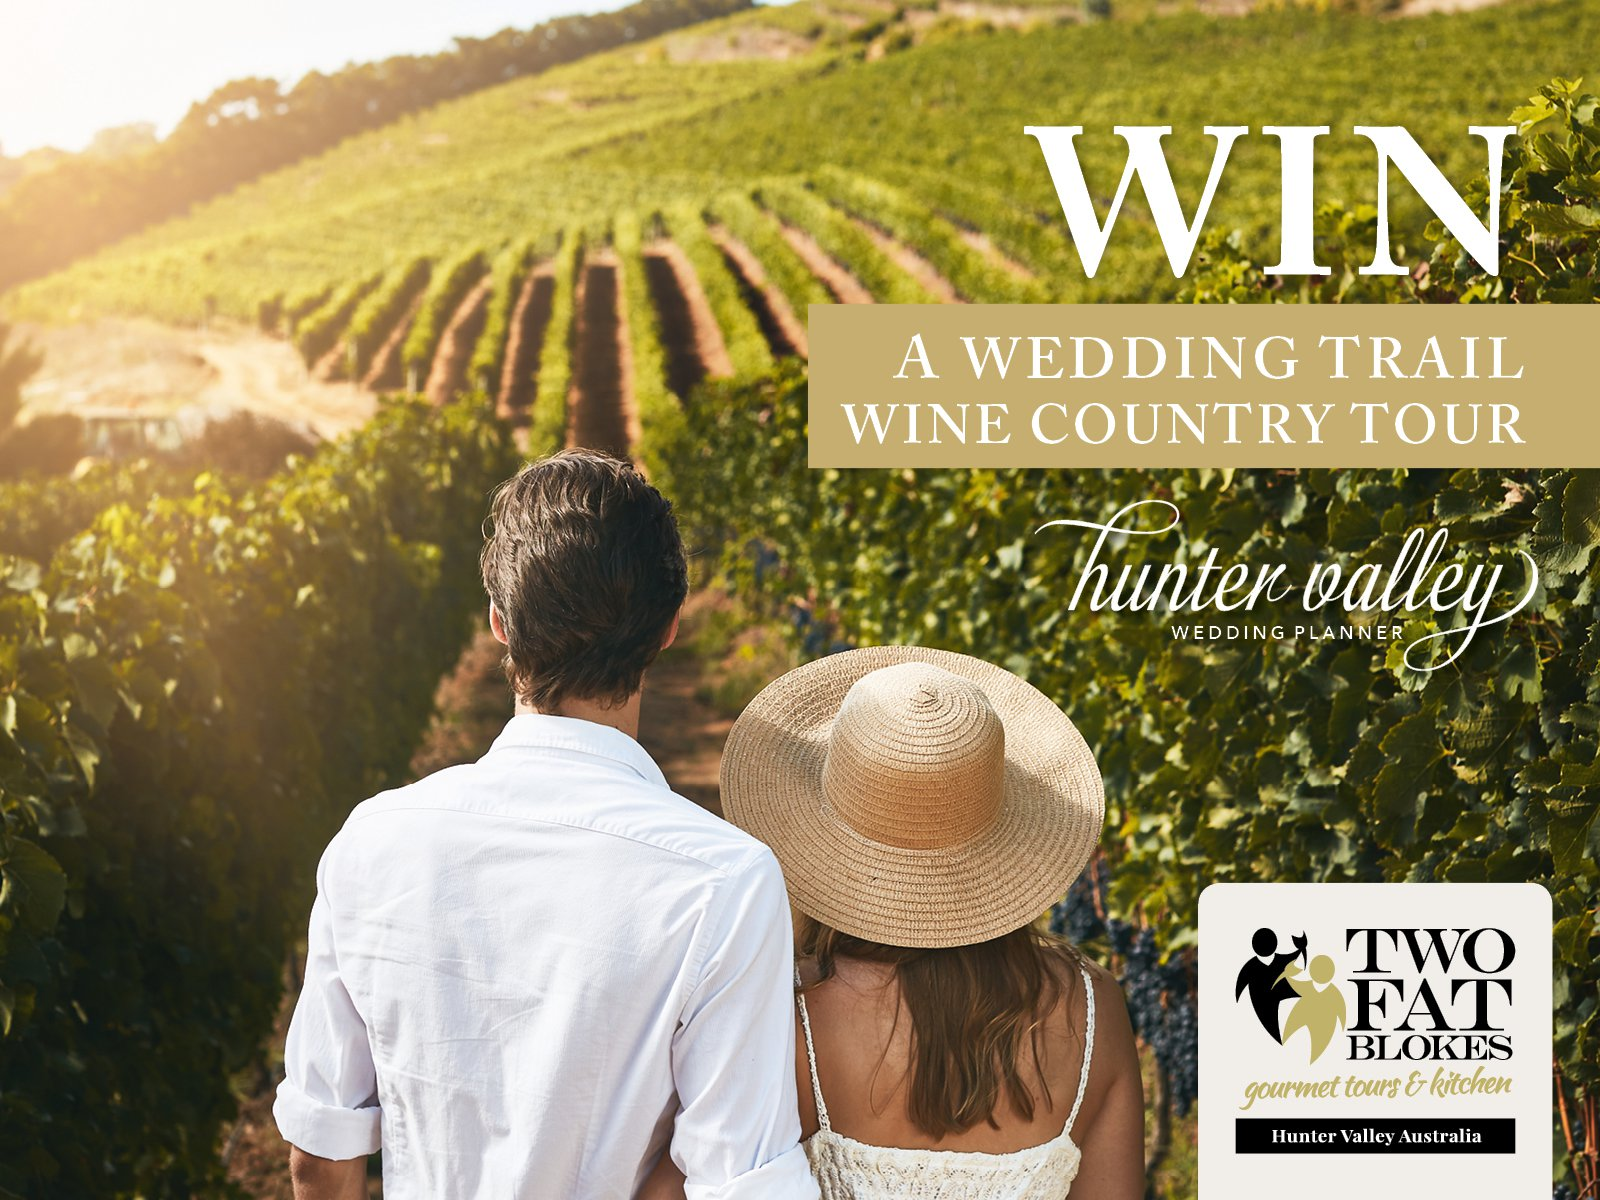 WIN! A Wedding Trail Wine Country Tour with Two Fat Blokes & HVWP Magazine